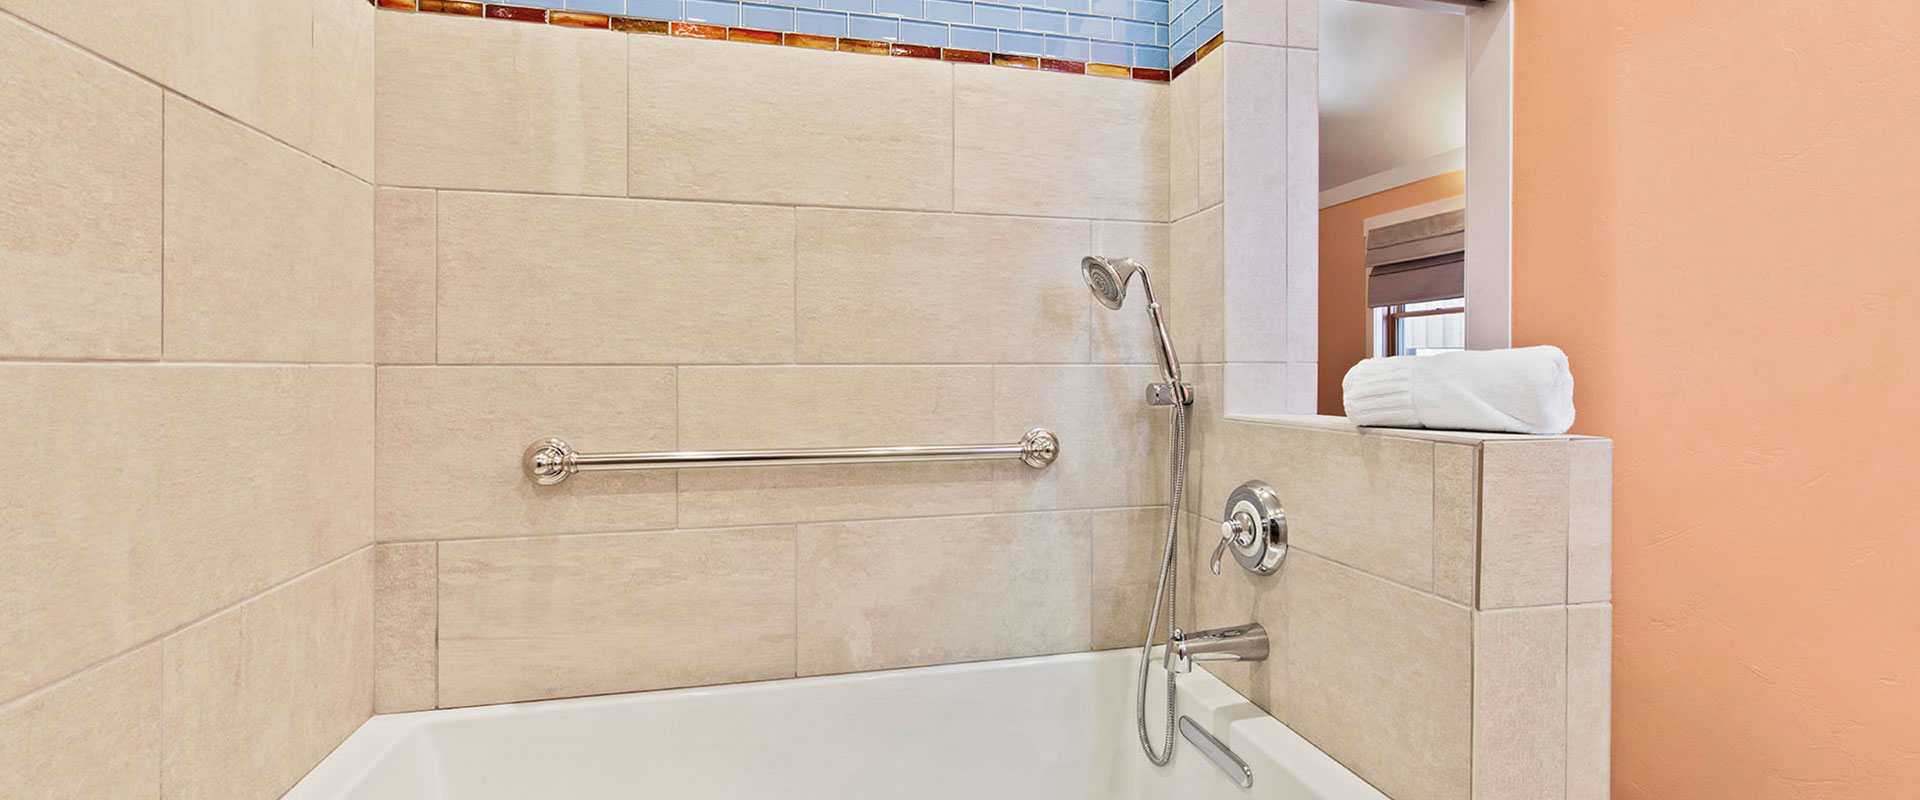 The breakfast nook area of Unit #18 at Moab Springs Ranch is bathed in natural light from two surrounding woodframe windows and the glass inset door leading onto the patio.